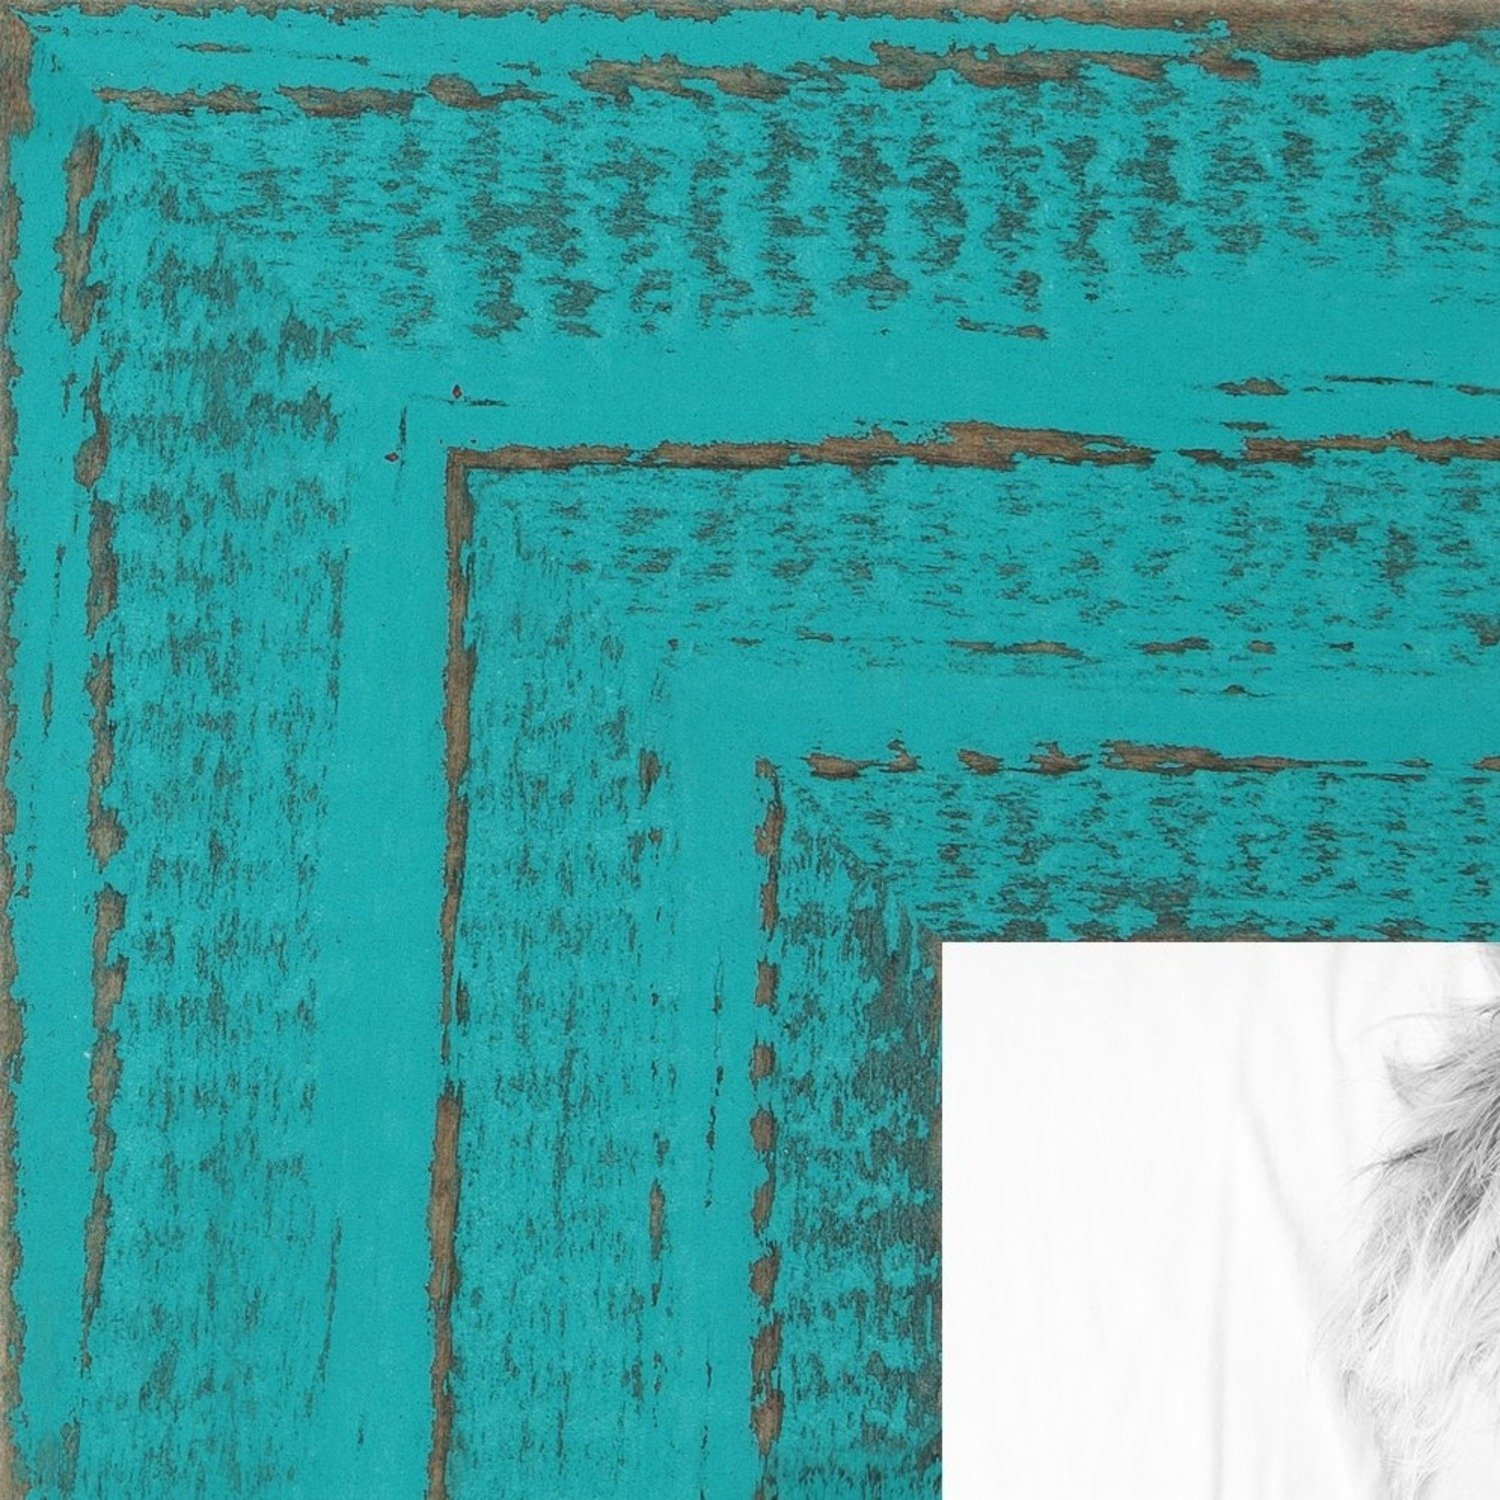 ArtToFrames 16x20 inch Weathered Barnwood in Saturated Turquoise Wood Picture Frame, WOMSM-ECO150-TUR-16x20 by ArtToFrames